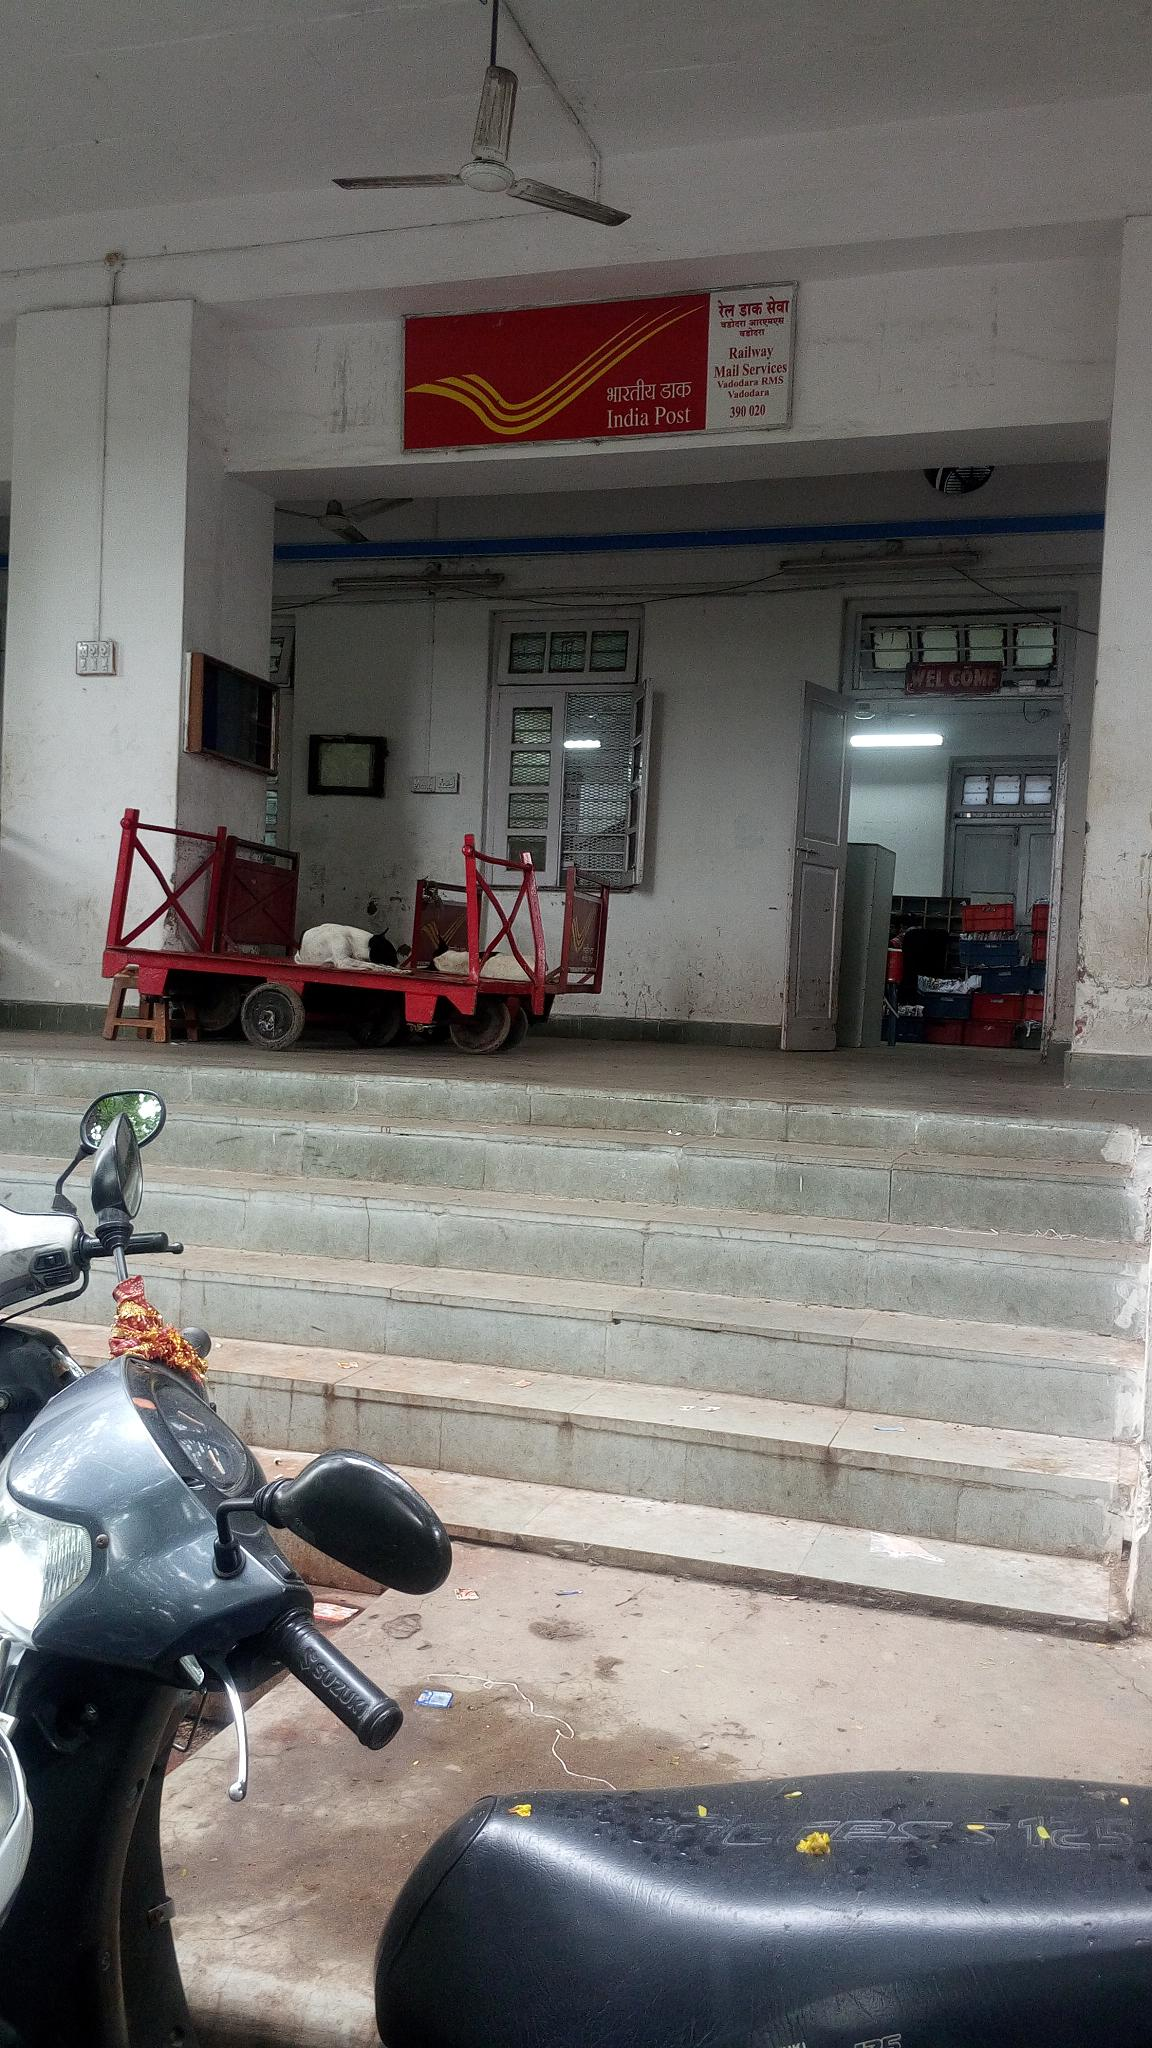 RMS vadodara having awkward 6 steps without any Ramp to access post office services. Inaccessible RMS for Divyang